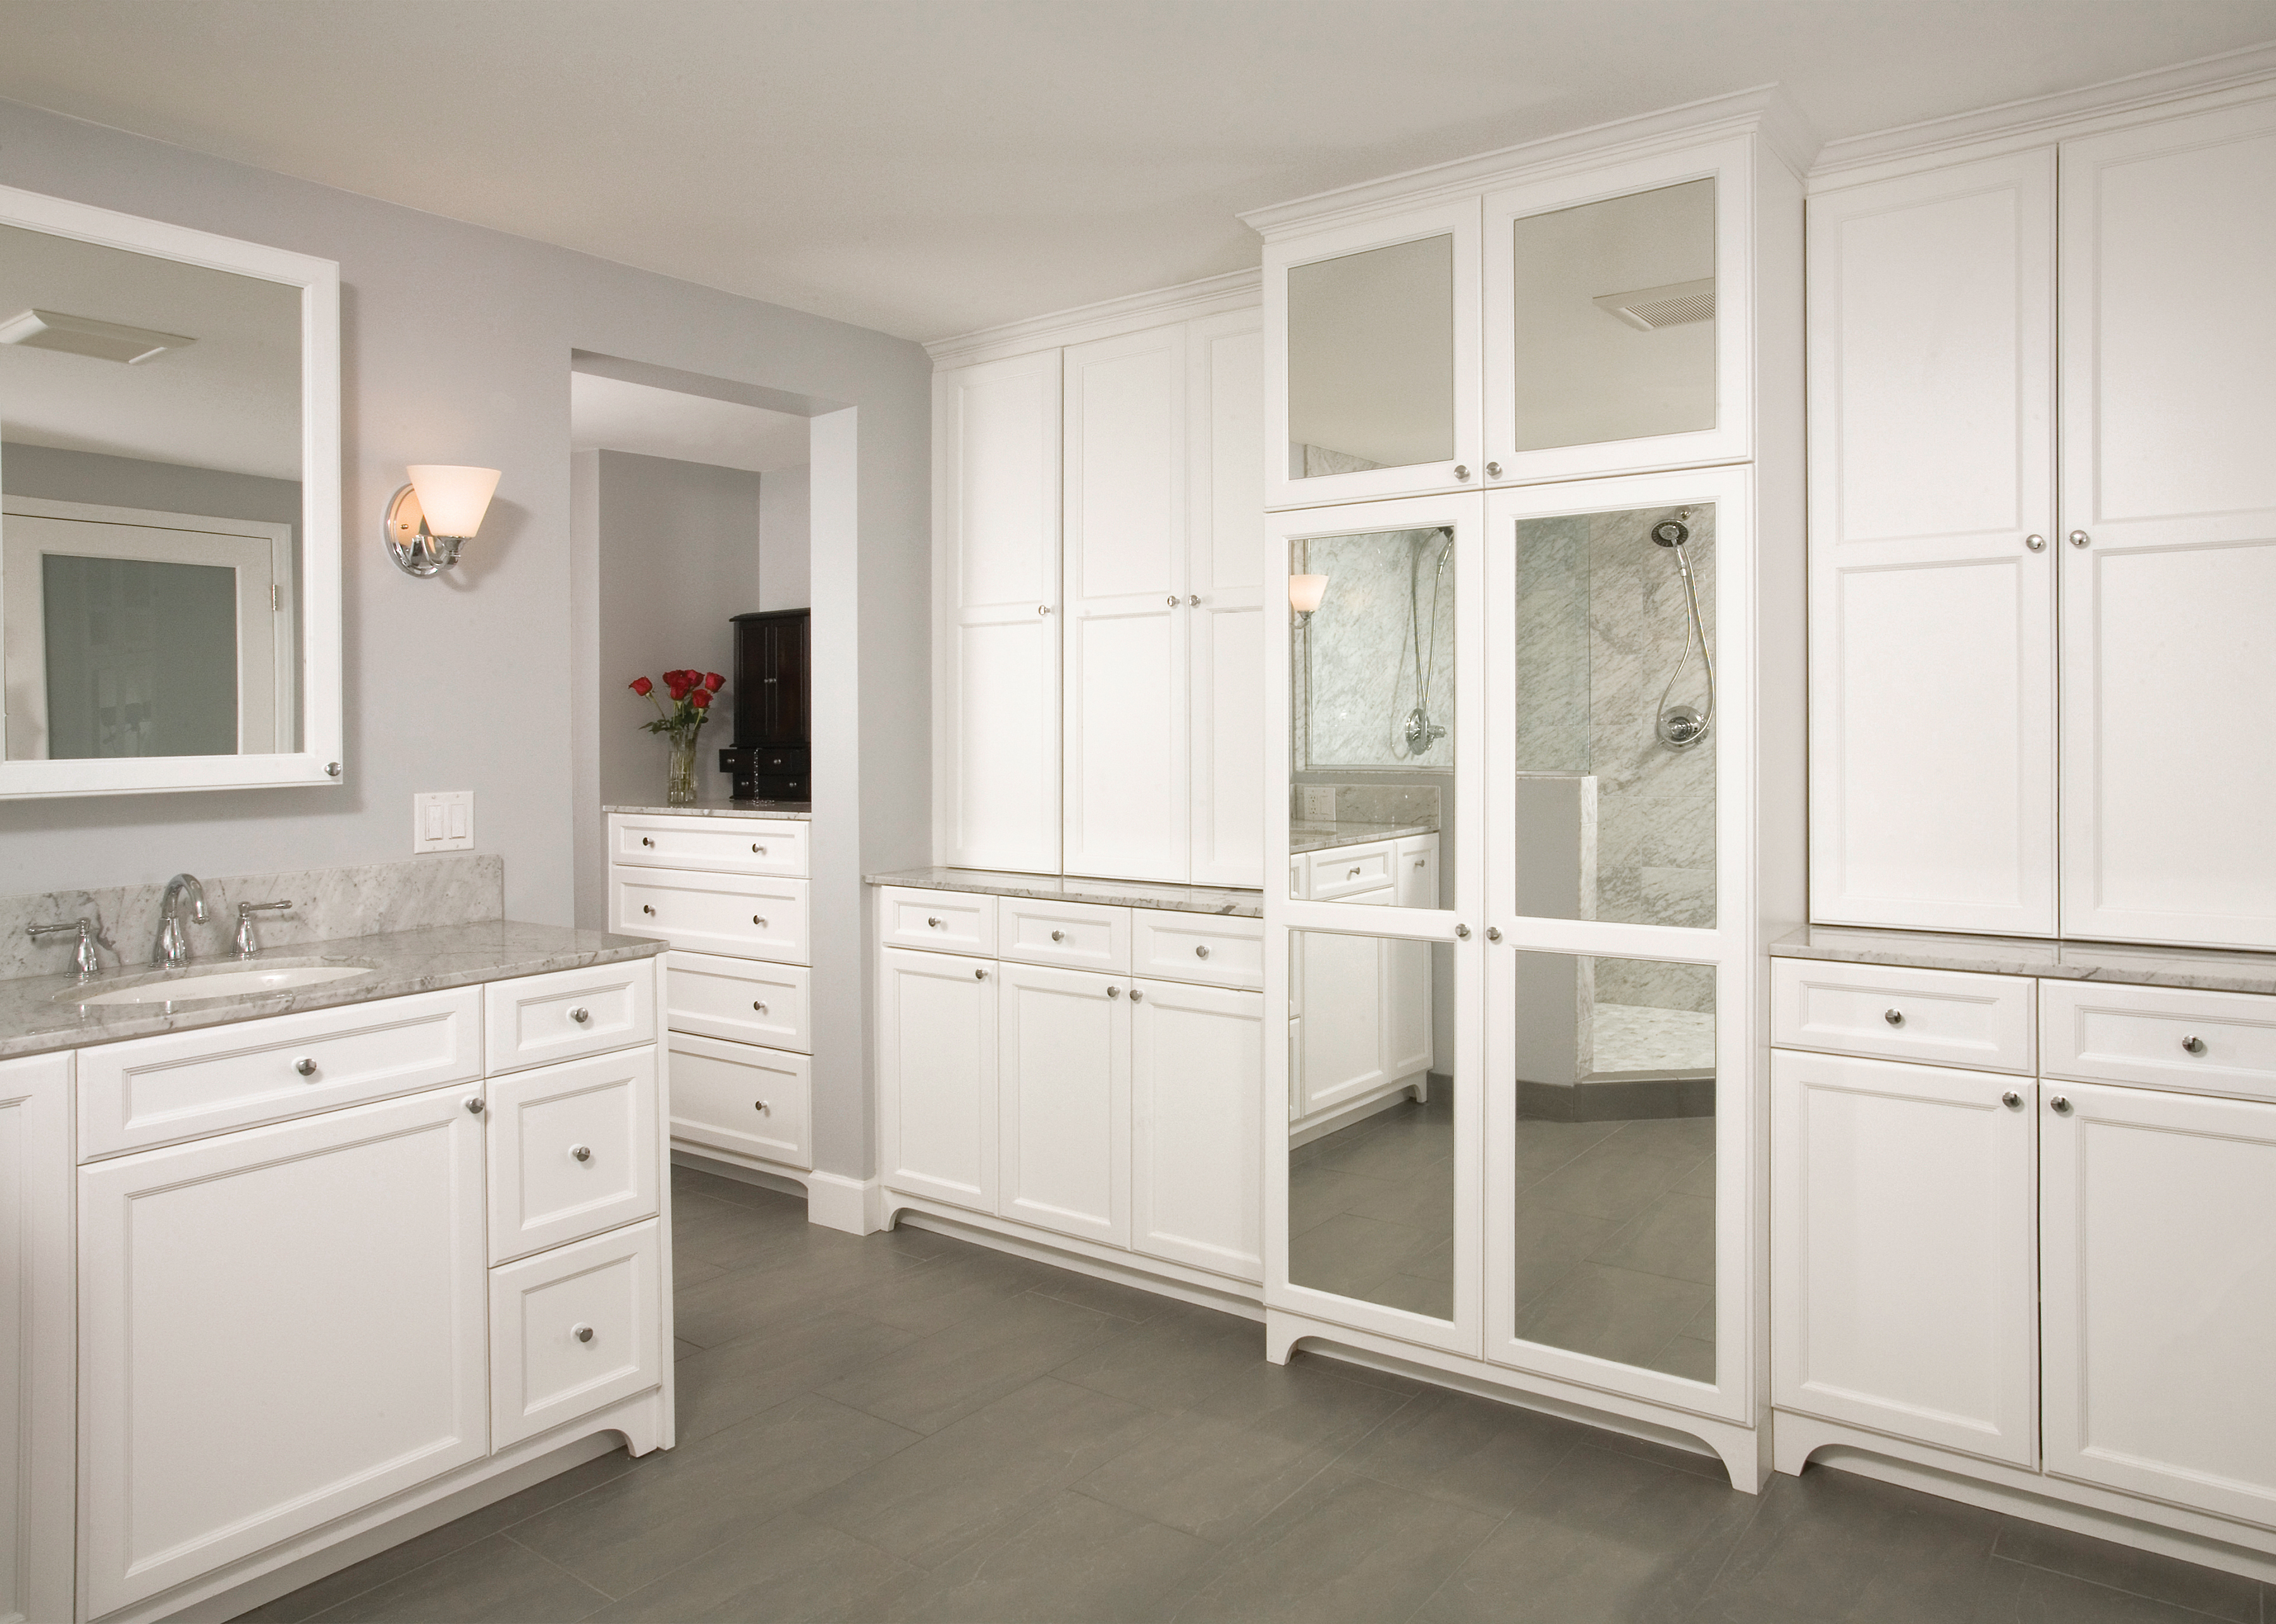 CS_WhitePaintBathroom_0045_300ppi